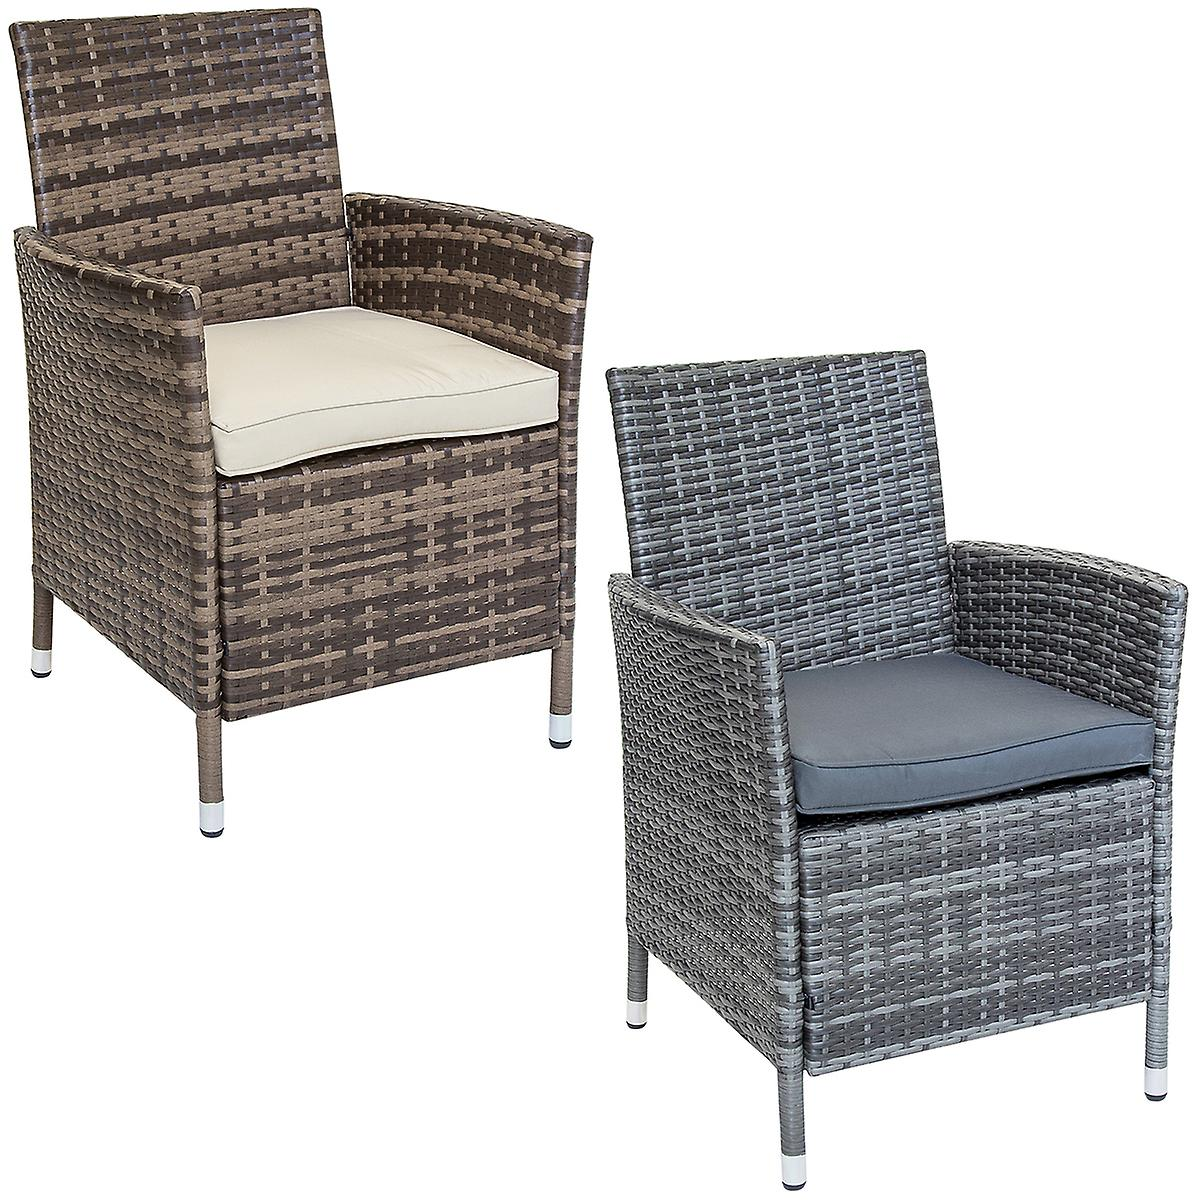 Swell Charles Bentley Pair Of Rattan Dining Chairs Garden Furniture Indoor Outdoor Use In Natural Grey Evergreenethics Interior Chair Design Evergreenethicsorg